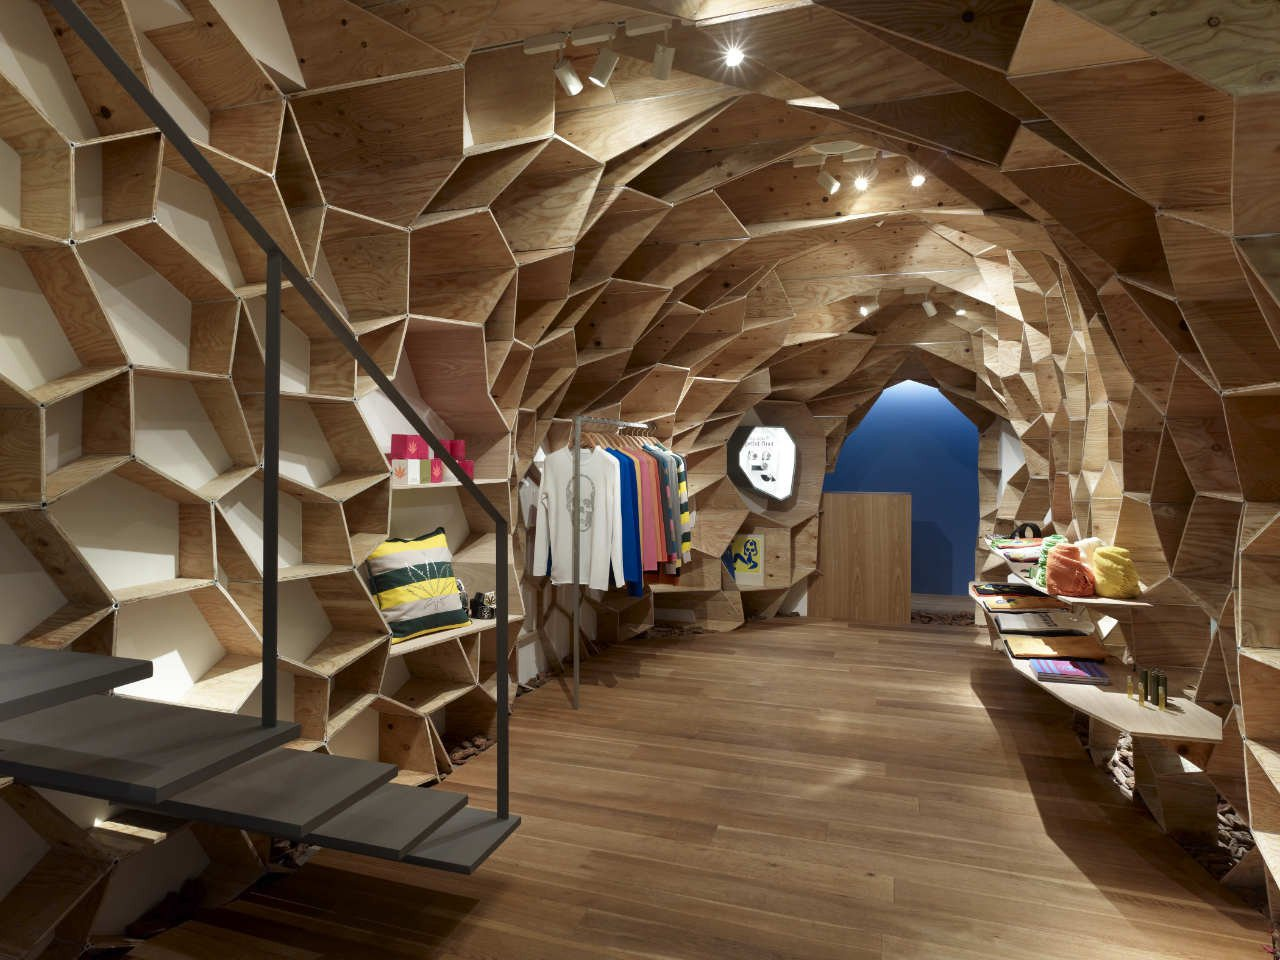 innovative design ideas for retail store the lucien pellat finet shinsaibashi in japan by kengo kuma associates - Retail Design Ideas